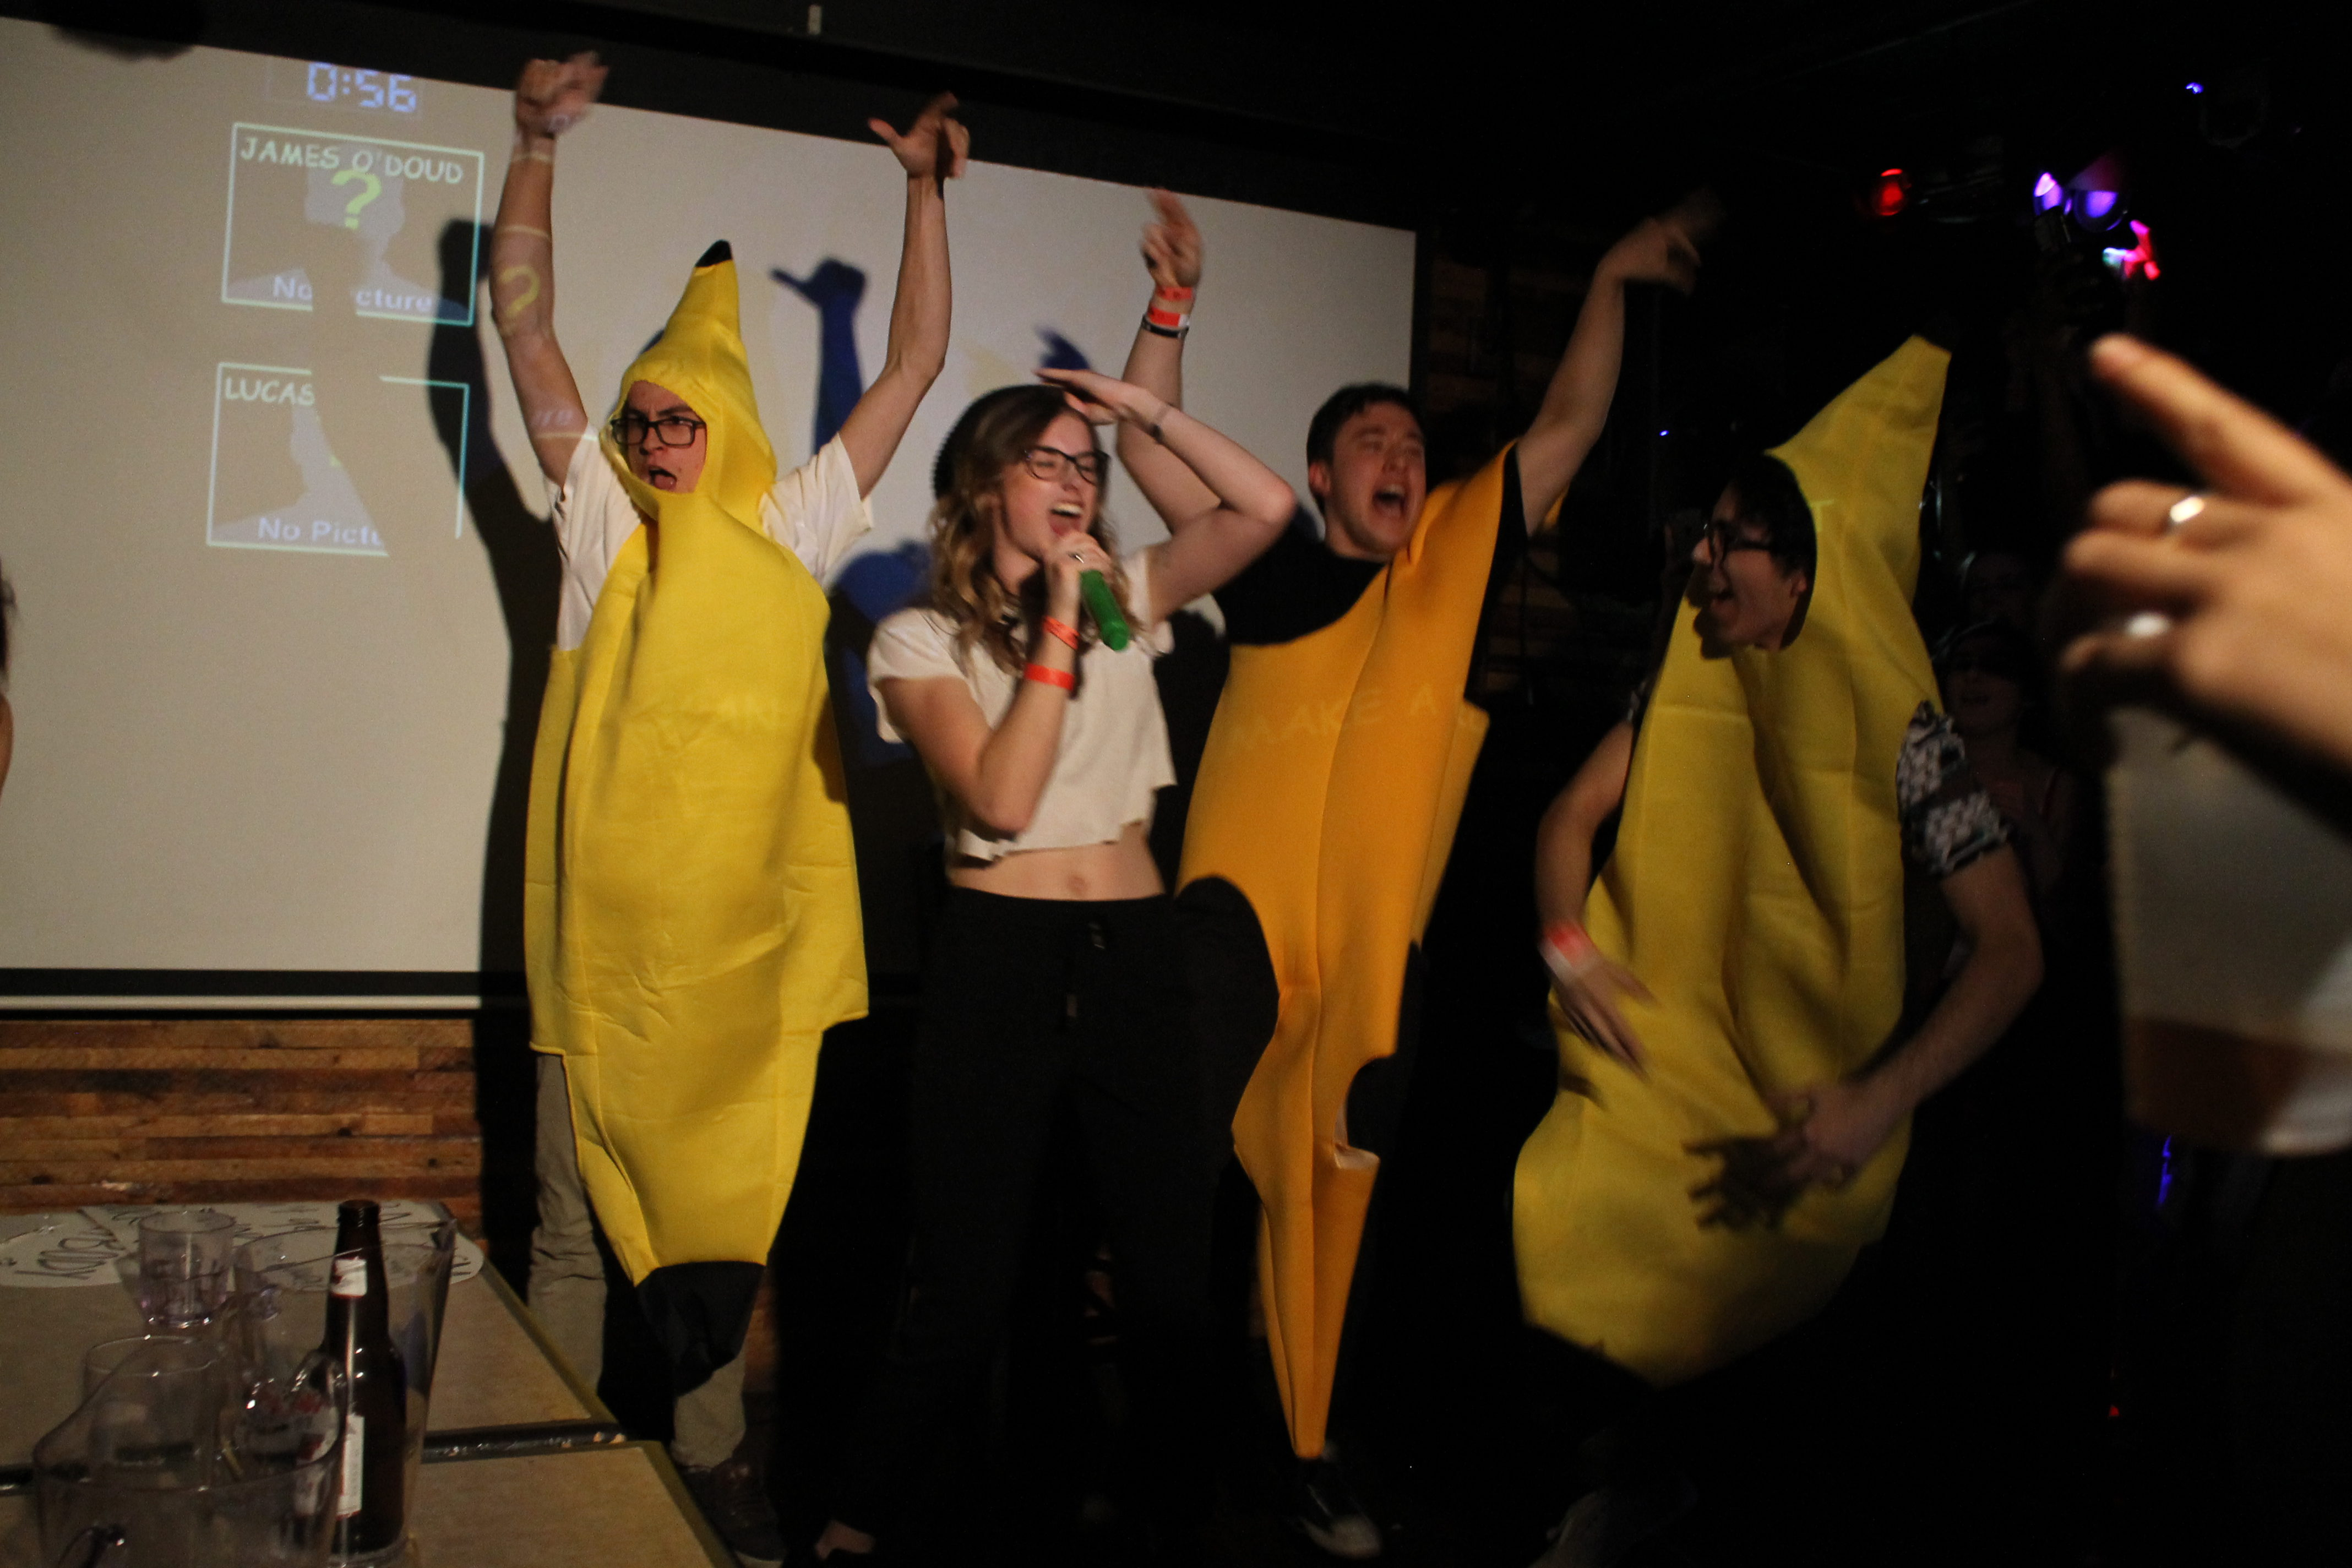 Kelsey from RTA dancing with bananas and singing Hollaback Girl.